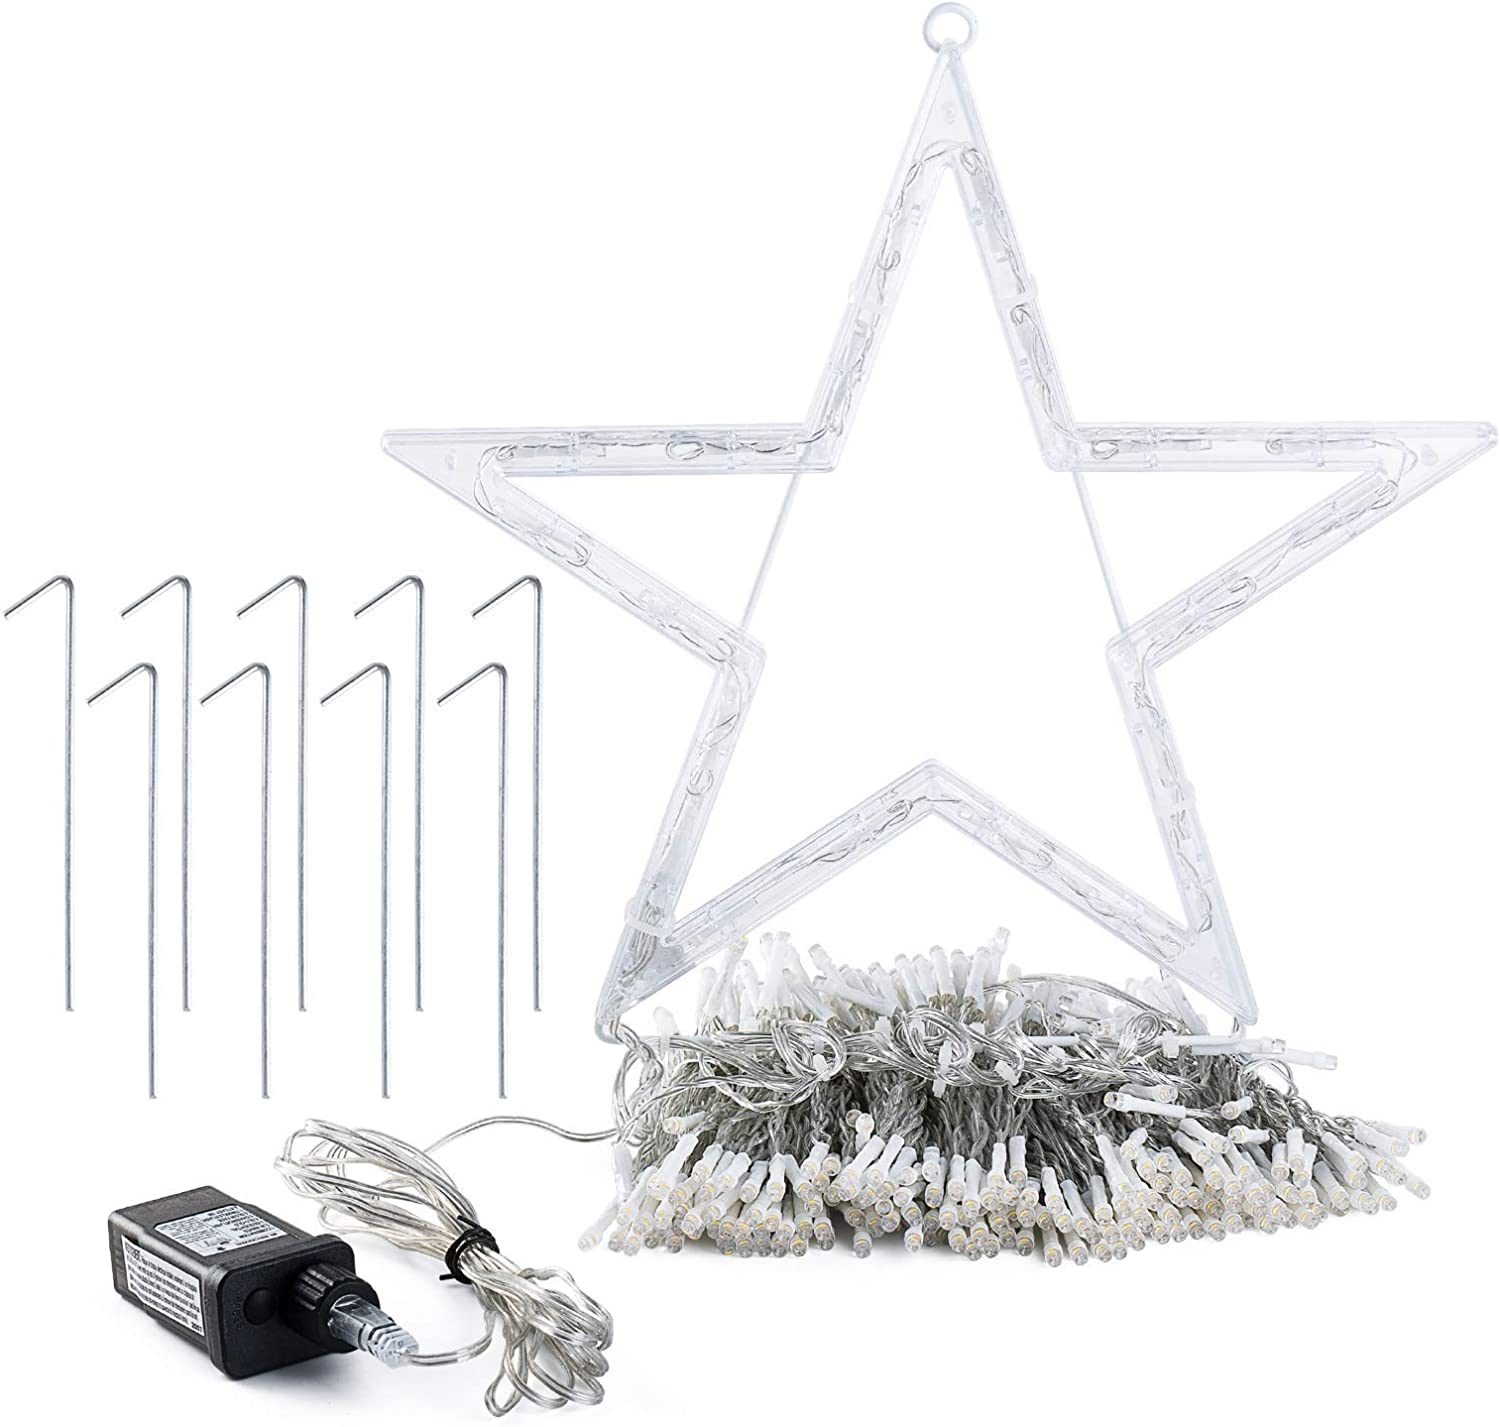 GIGALUMI Christmas Decorations Lights 344 4 years warranty Max 42% OFF Ligh Star 8 LED